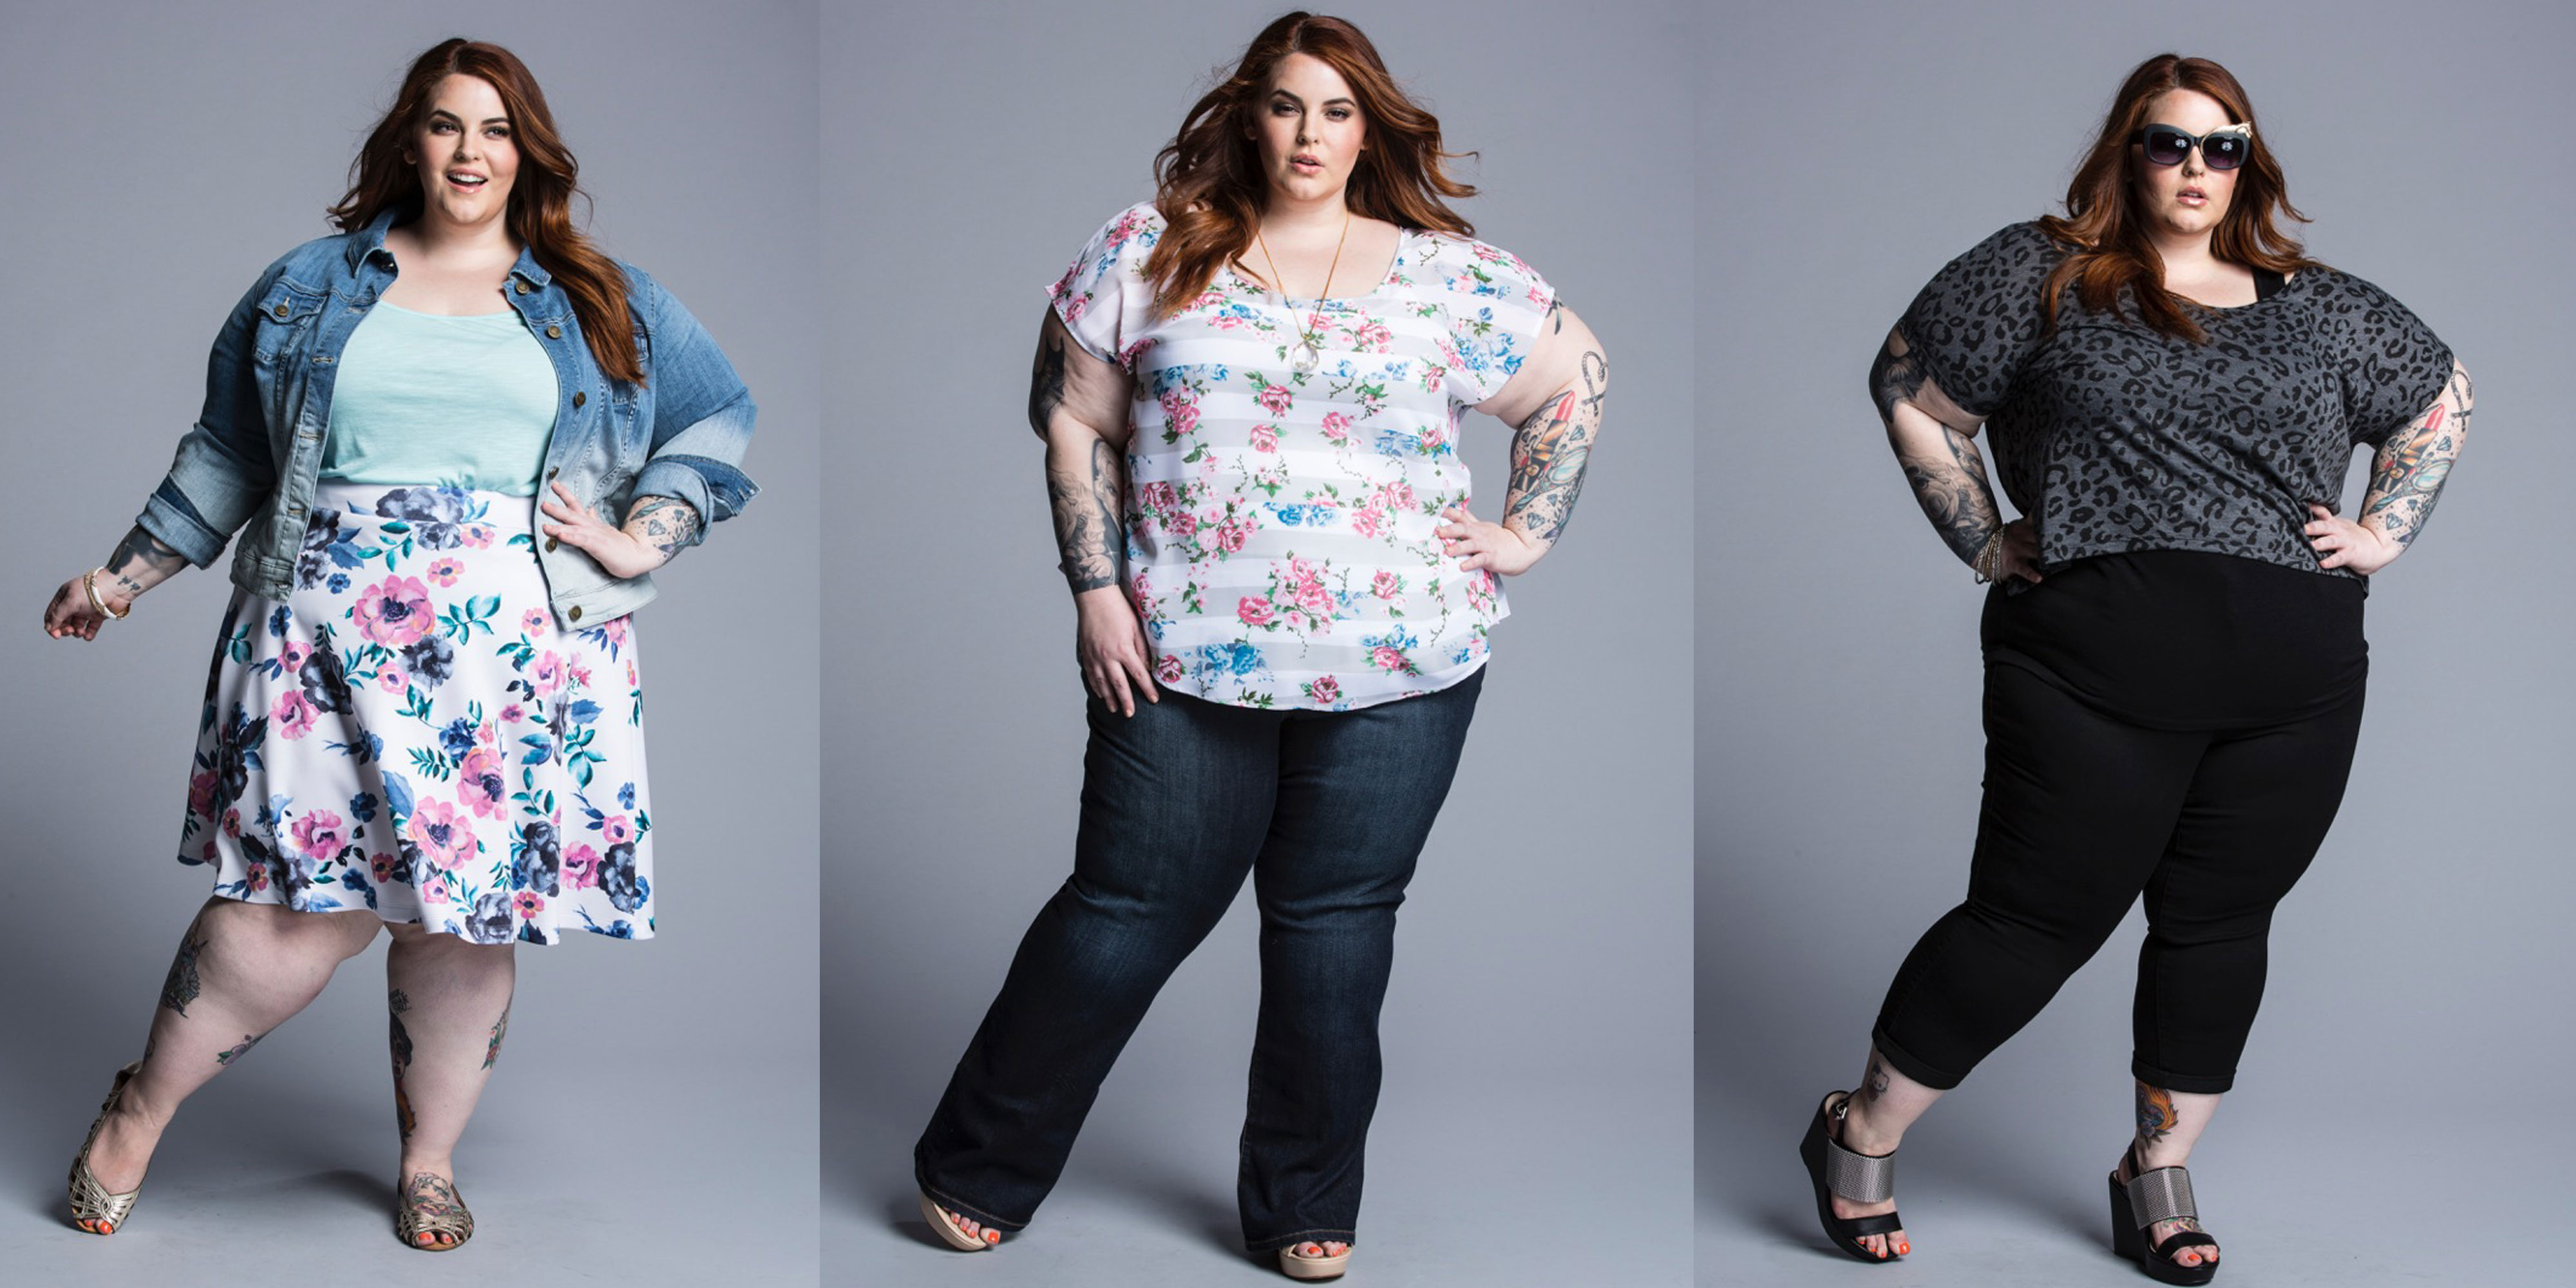 Plus-Size Model Tess Holliday Glows in Photoshop-Free